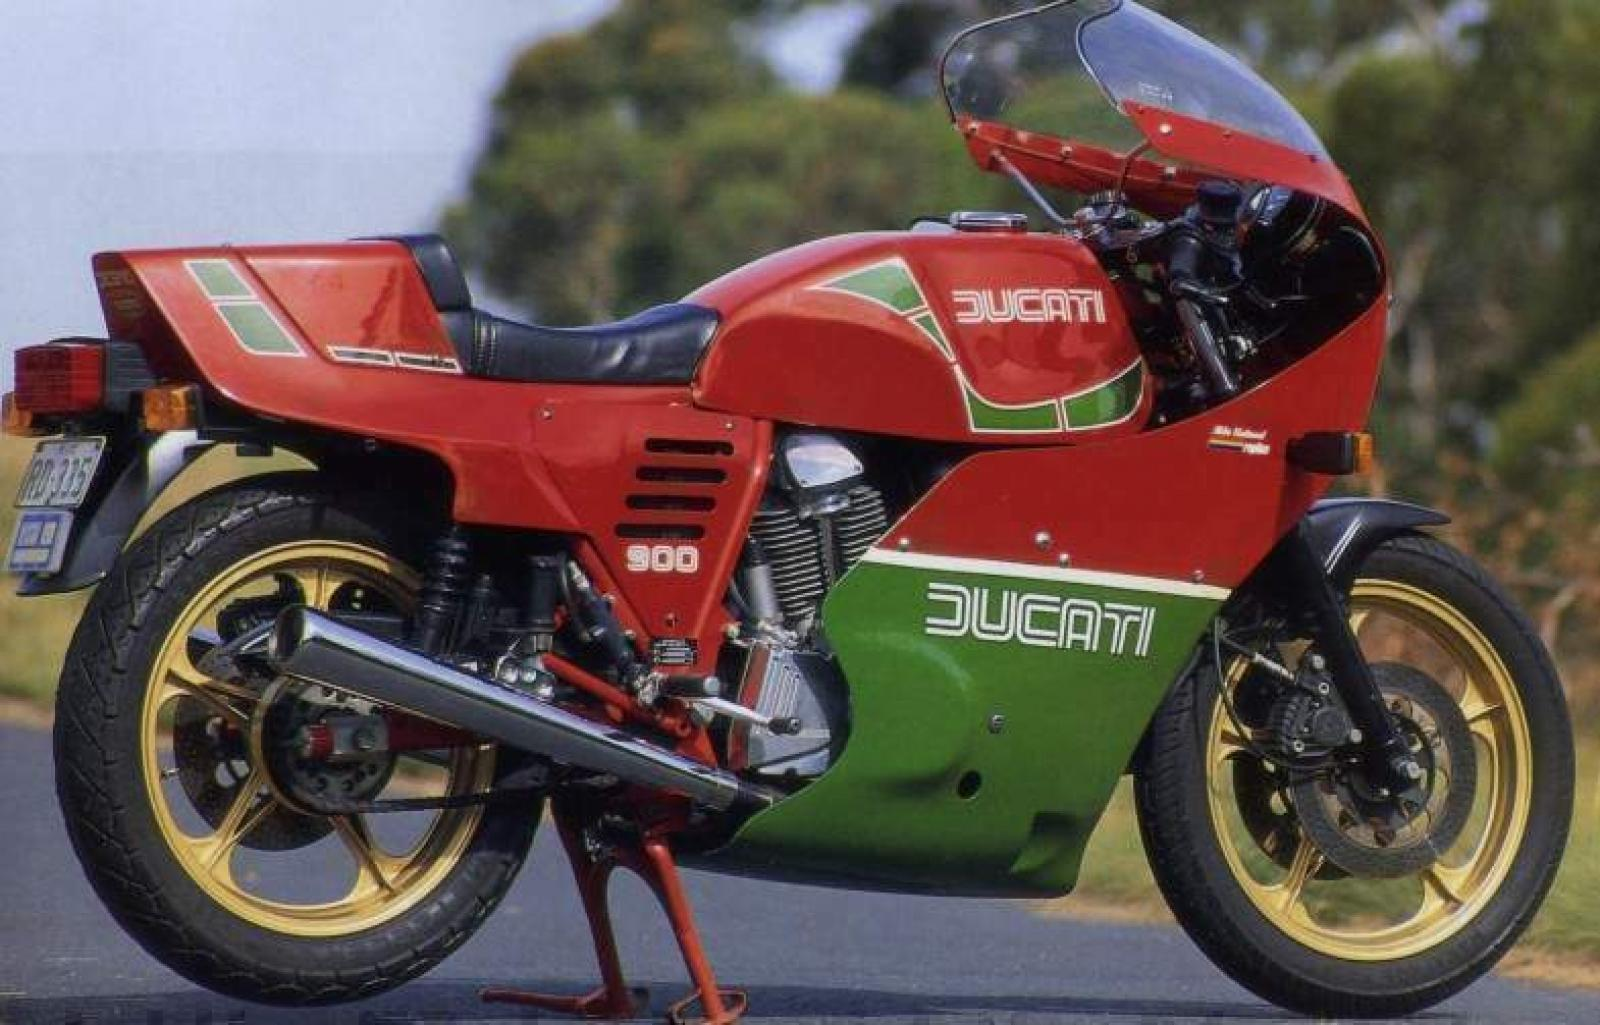 Ducati 900 SS Hailwood-Replica 1985 images #78743